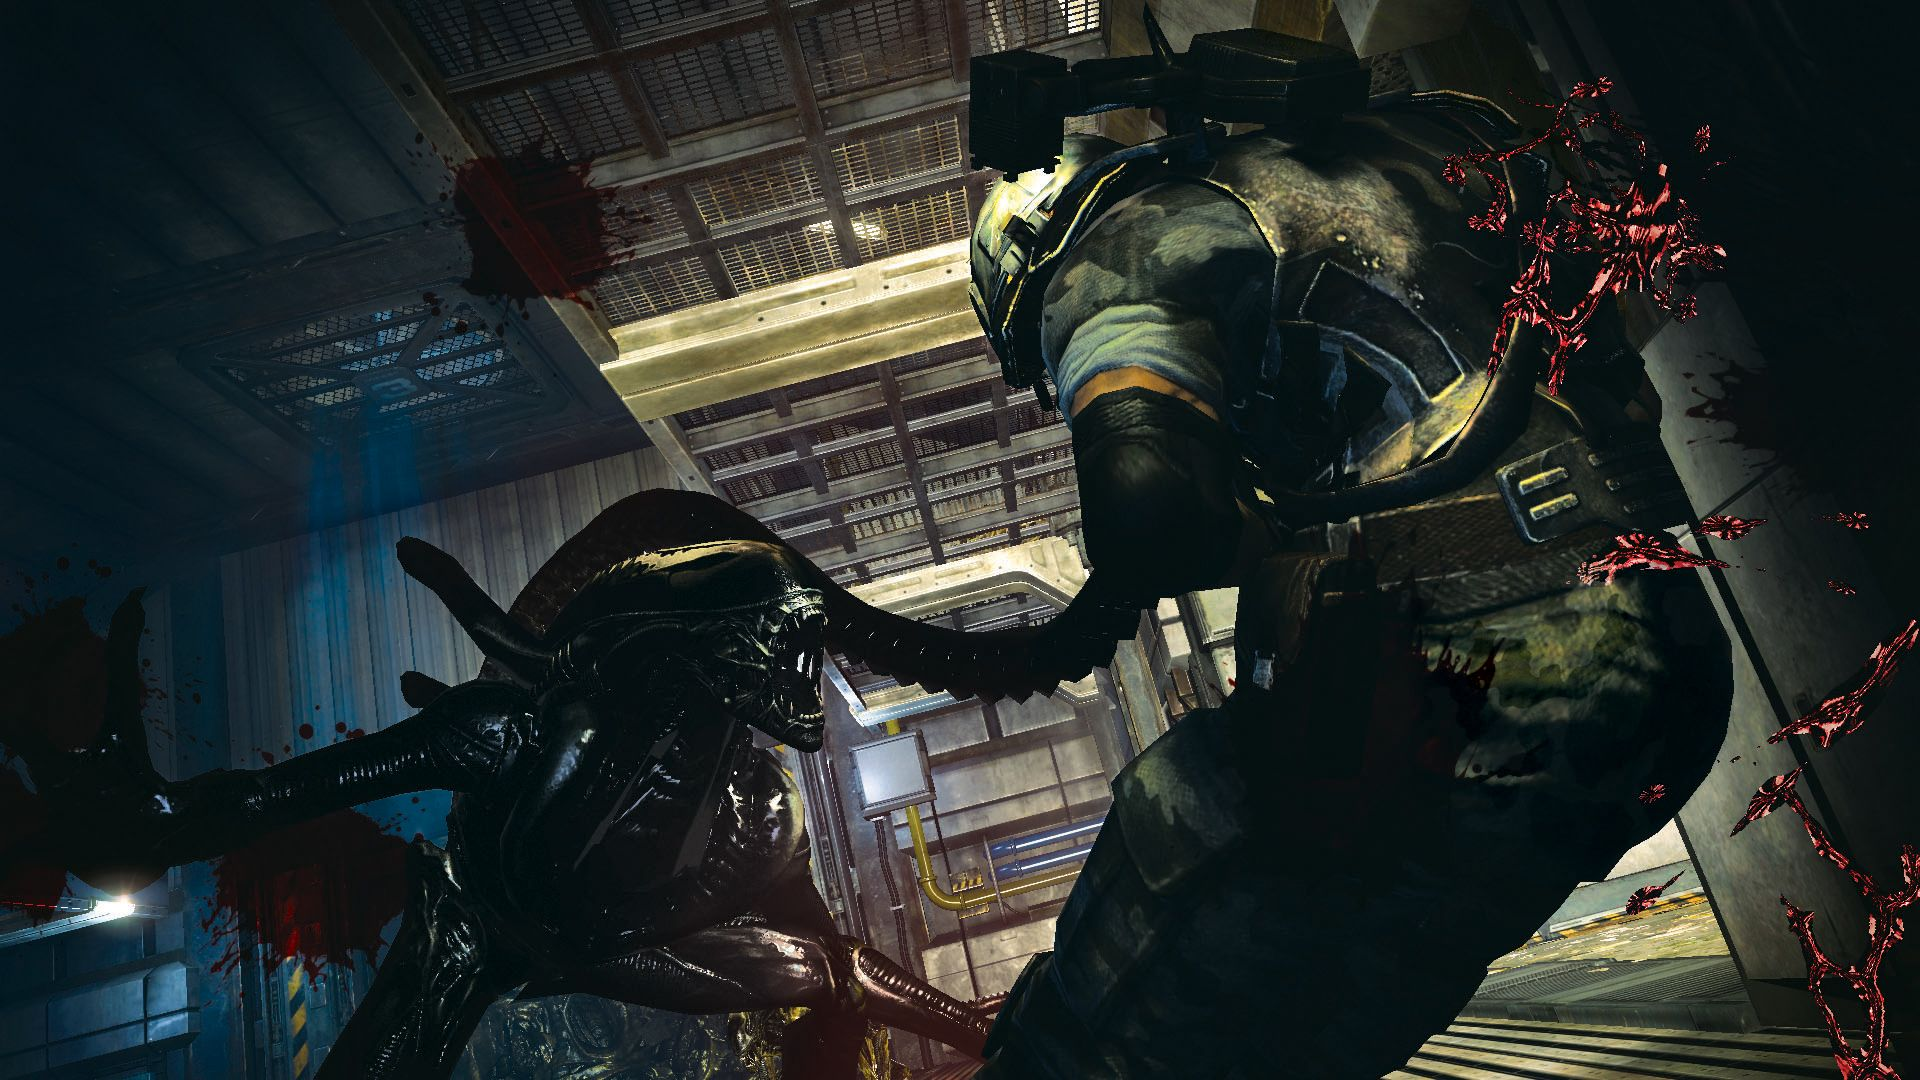 Aliens: Colonial Marines - has the Wii U lost out or been spared?